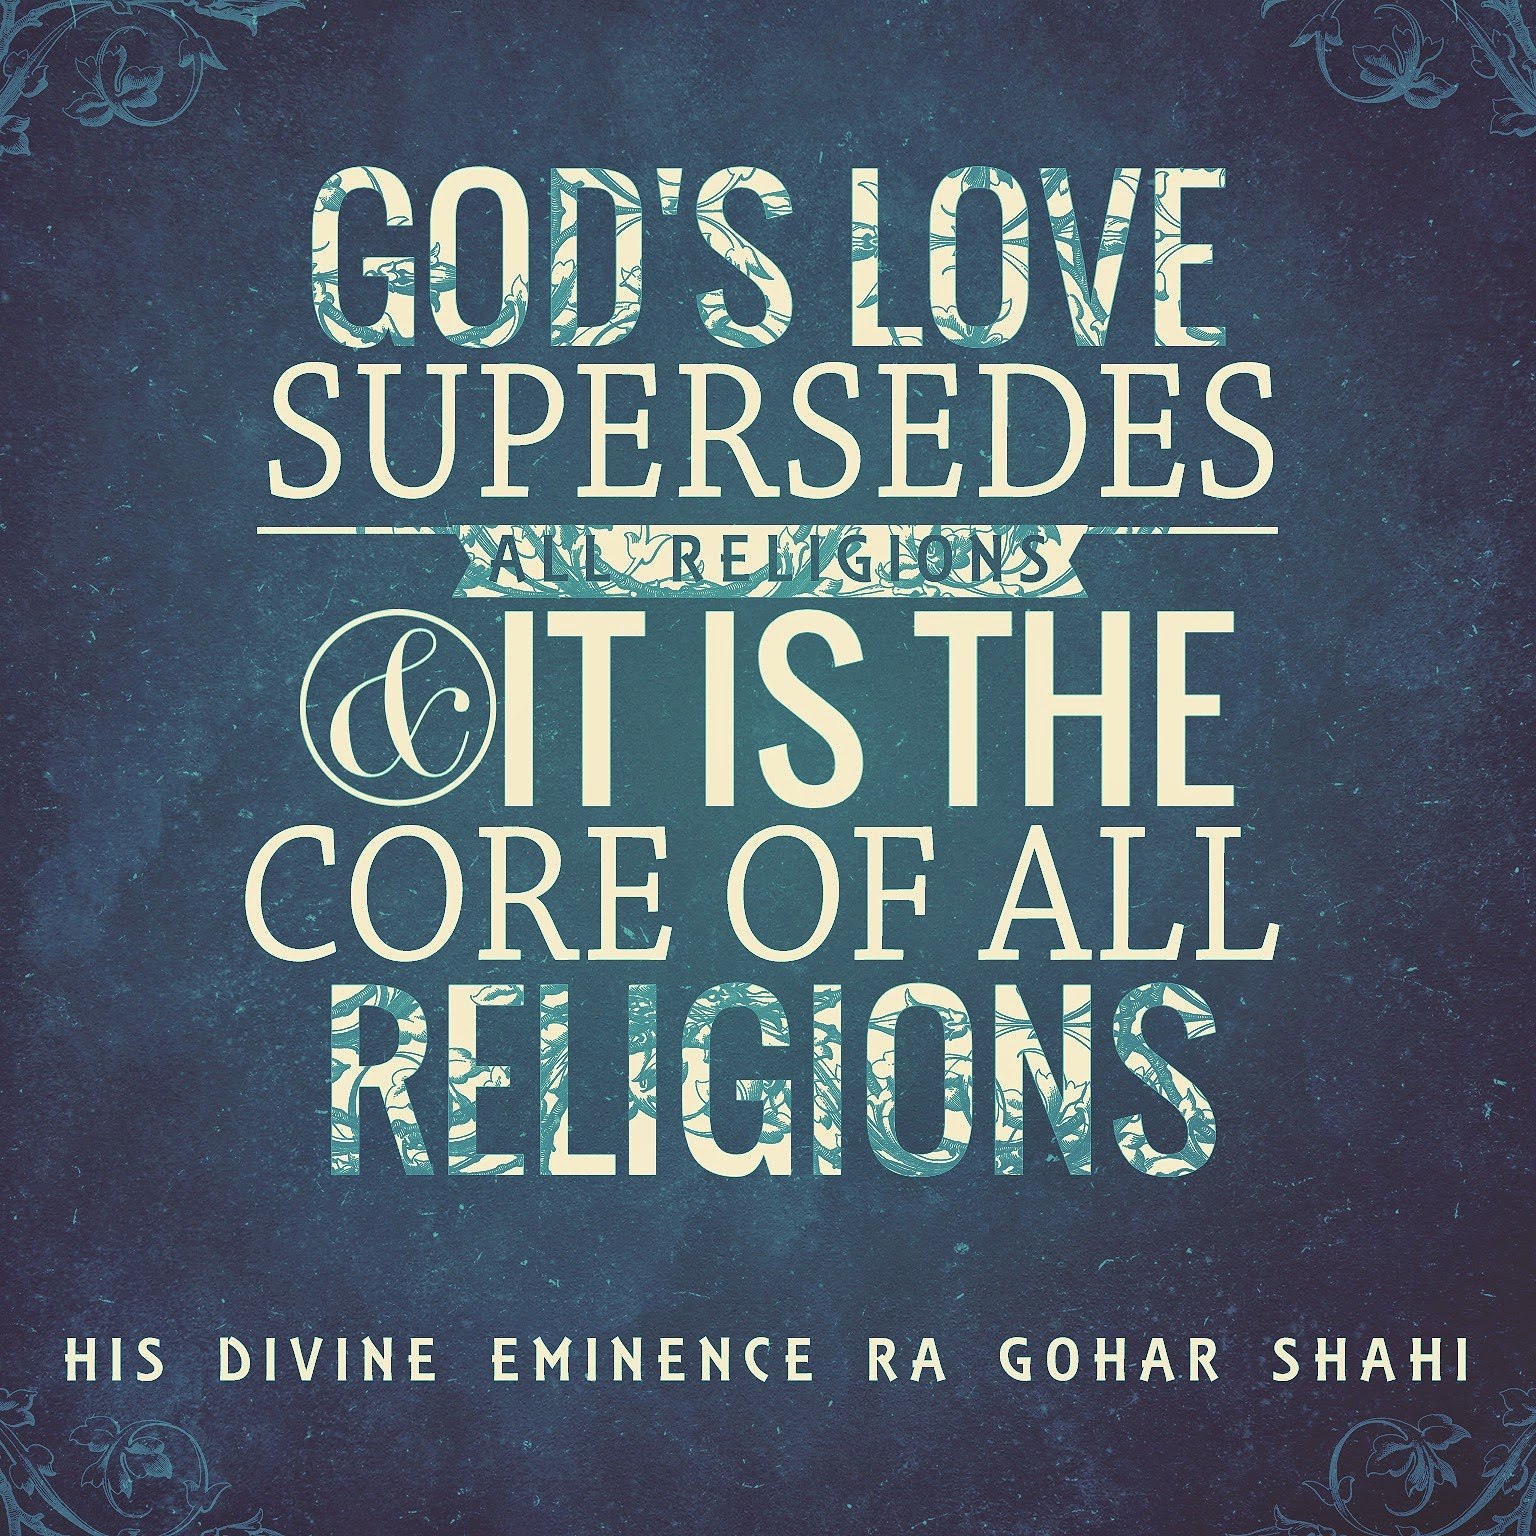 Todays Quote About Love The Official Mfi® Blog Quote Of The Day God's Love Supersedes.